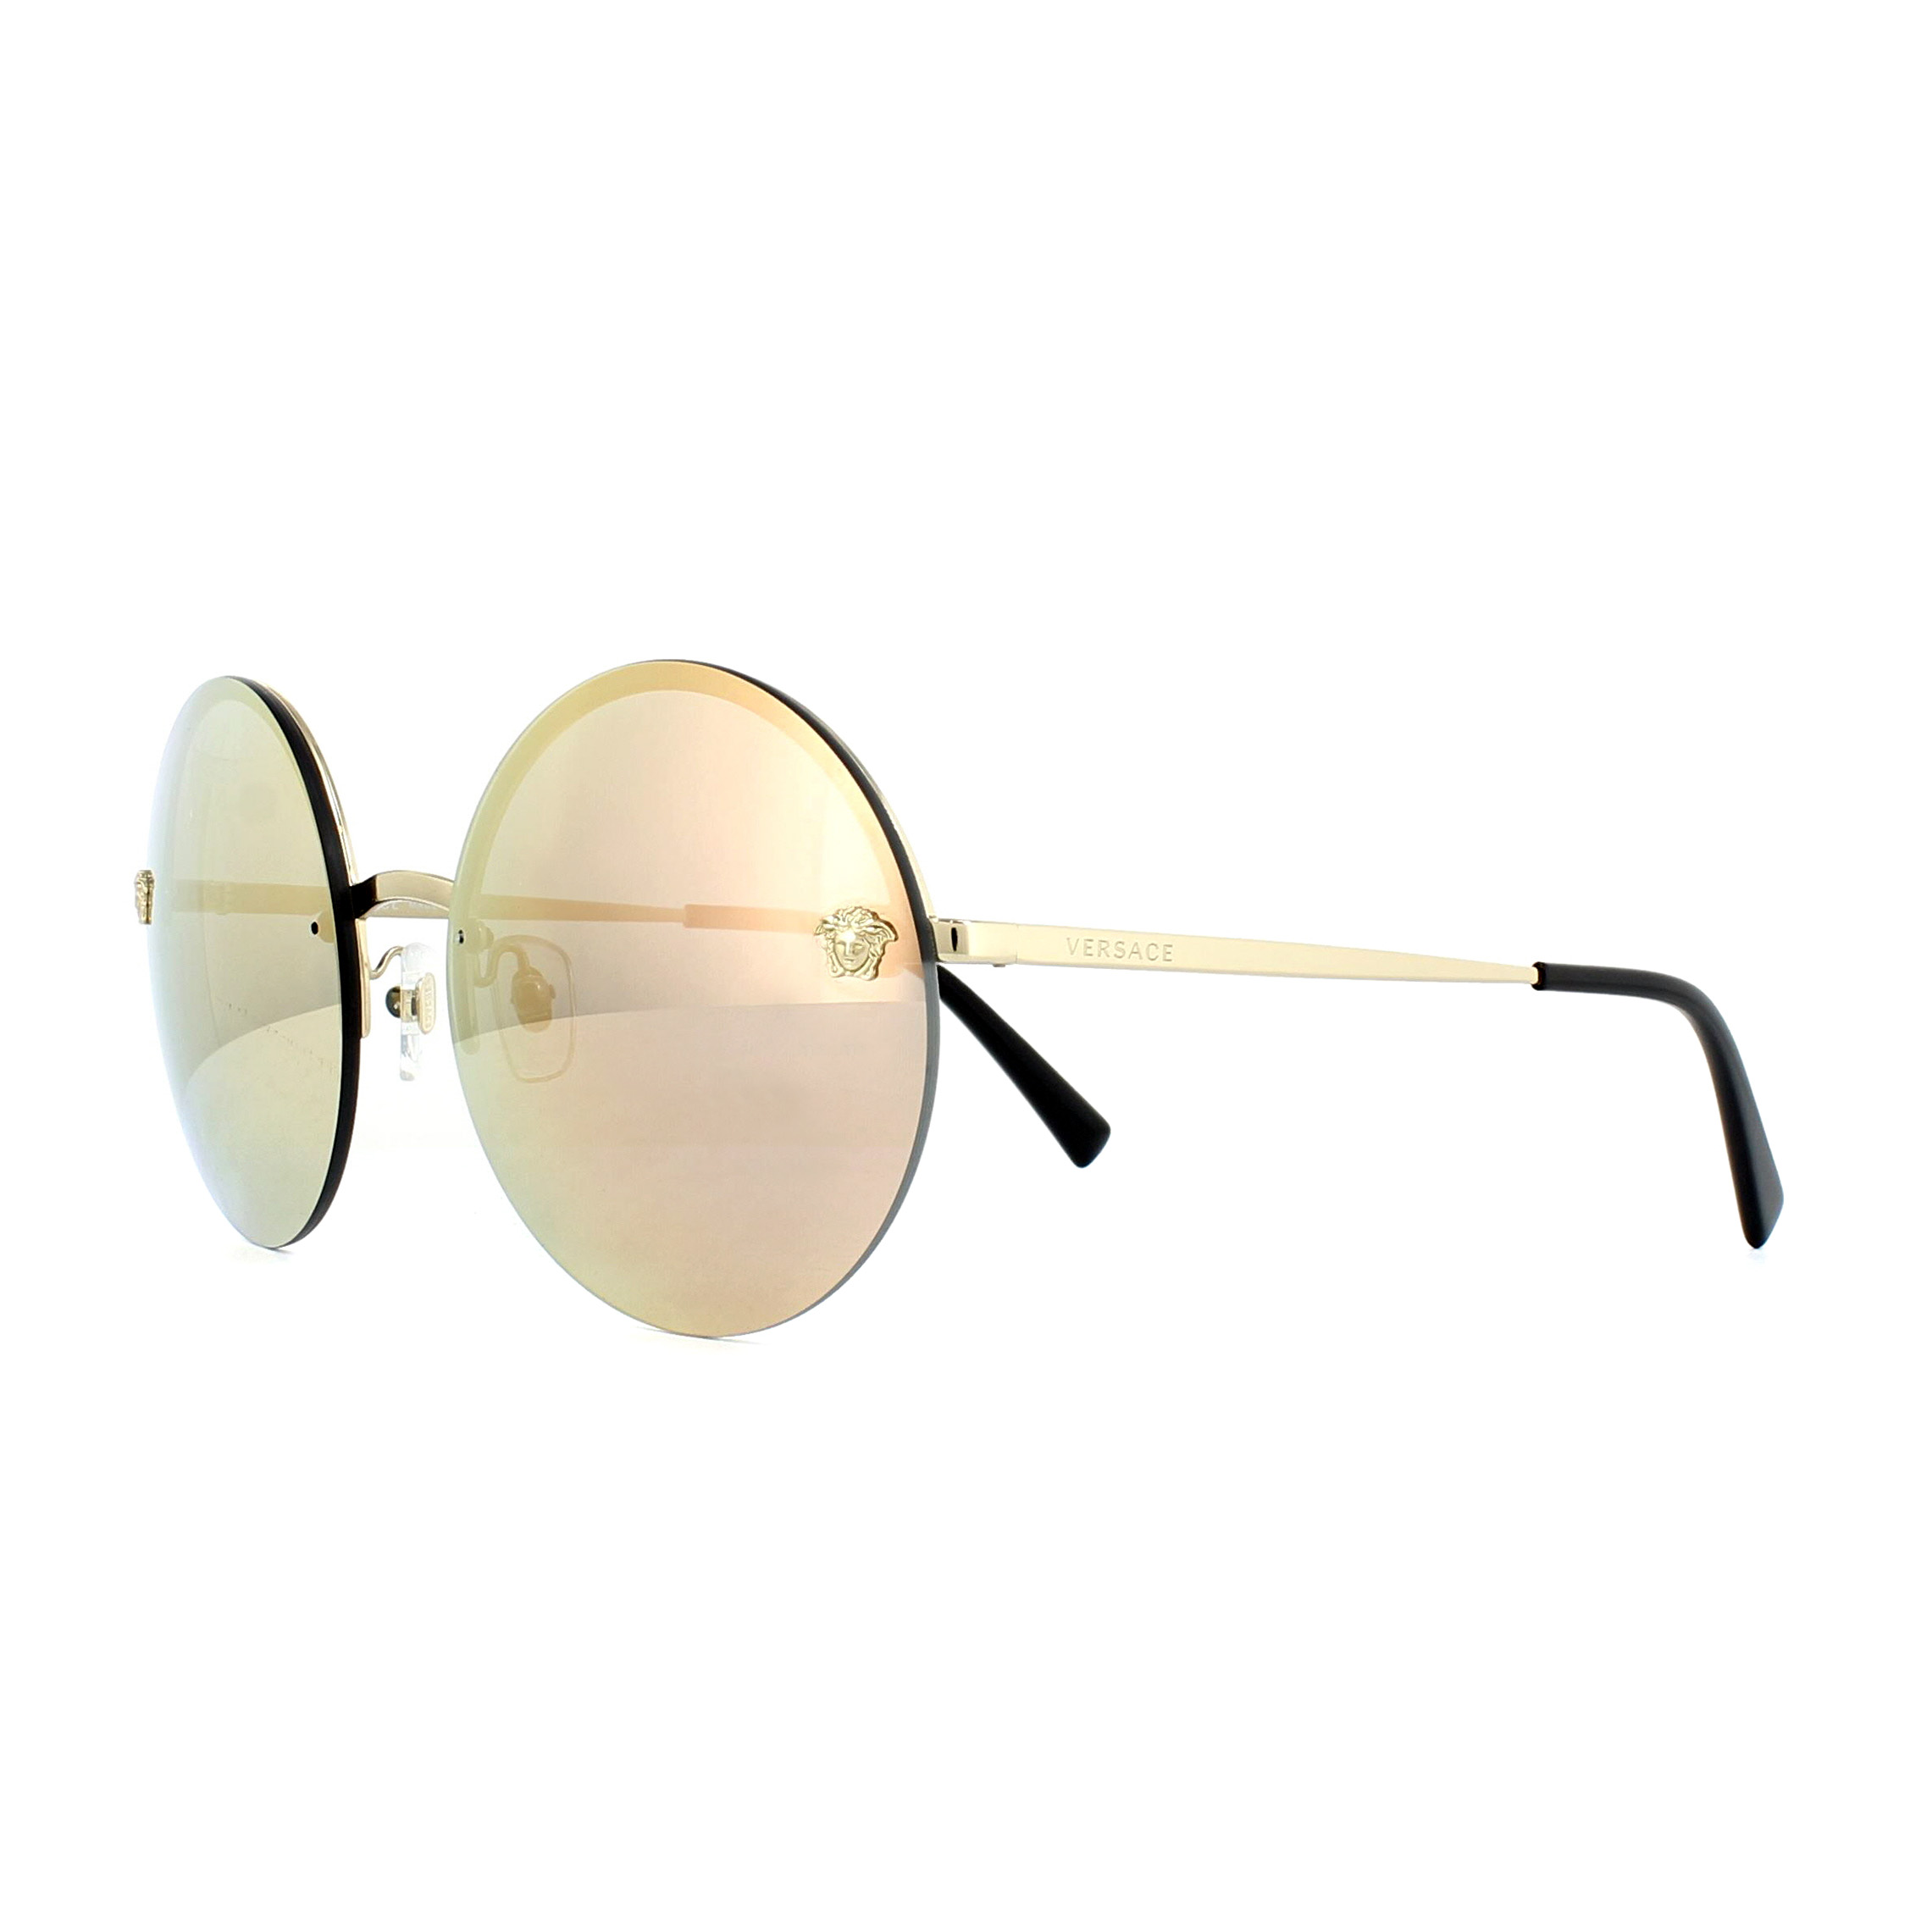 Sentinel Versace Sunglasses 2176 12524Z Pale Gold Grey Mirror Rose Gold